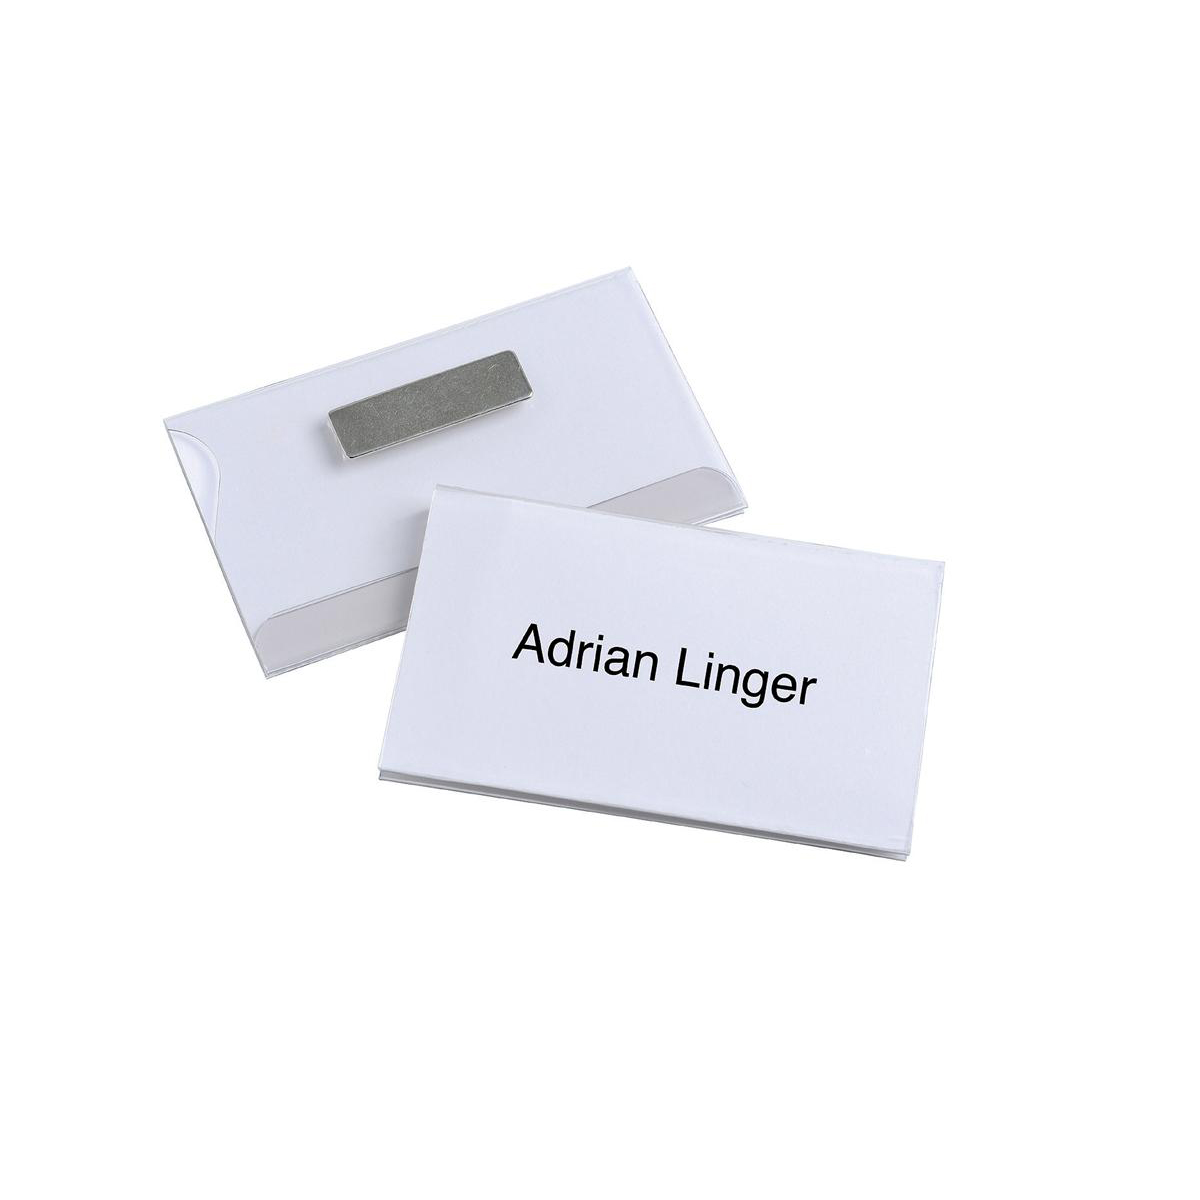 Durable Name Badges Magnetic W90xH54mm Transparent PVC Ref 8117 Pack 25